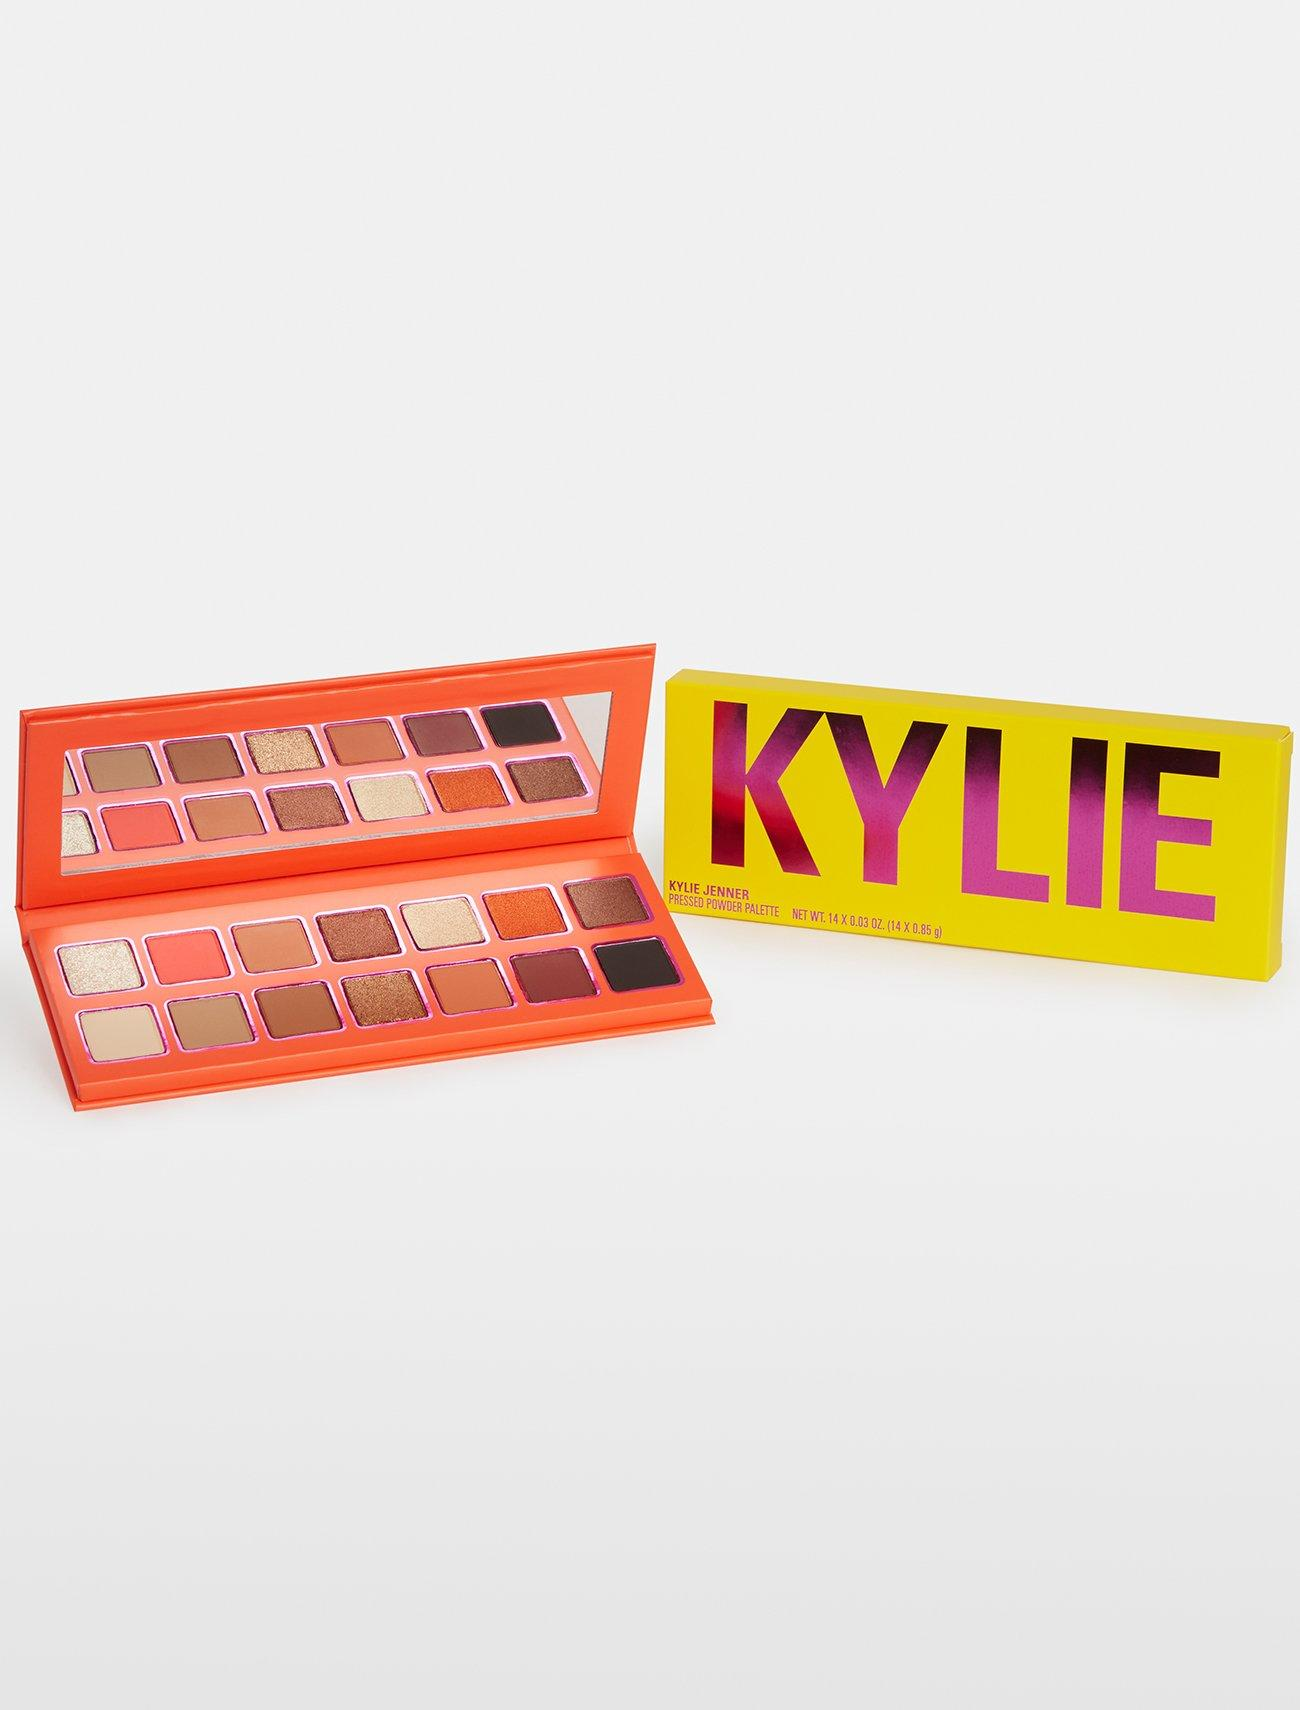 Kylie Cosmetics Kylie Jenner Palette